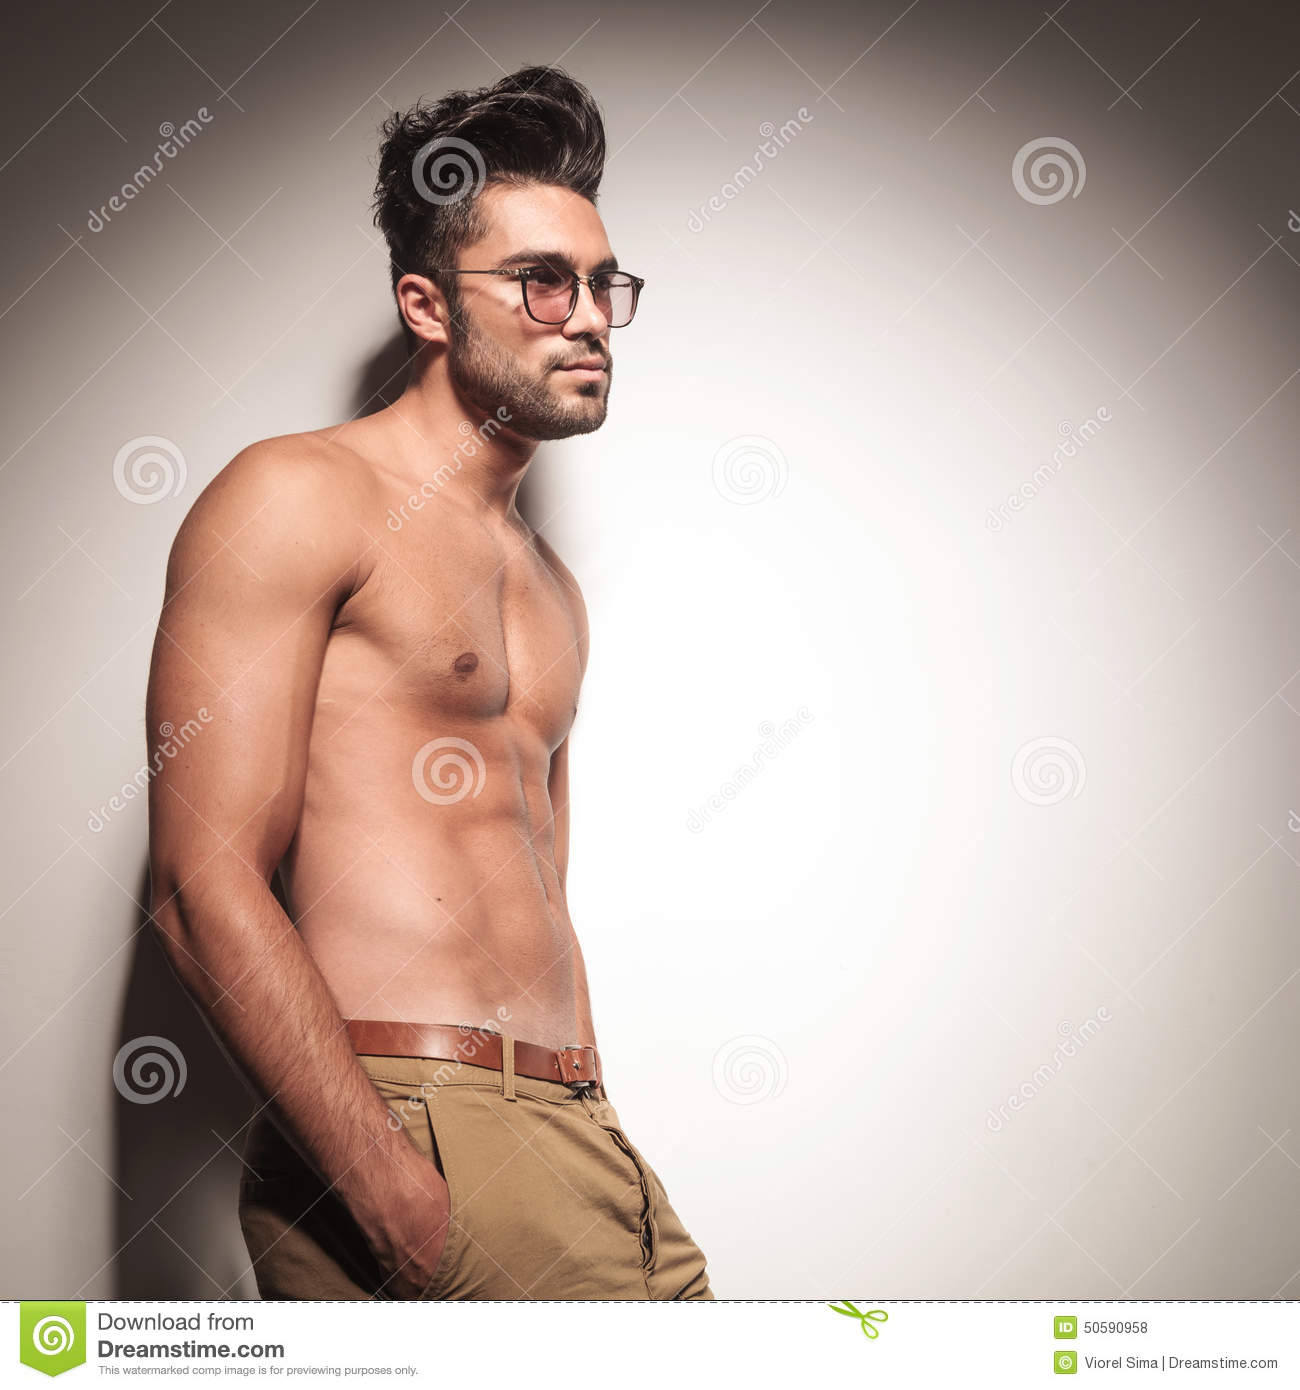 side view of a naked man leaning on a wall stock photo - image of